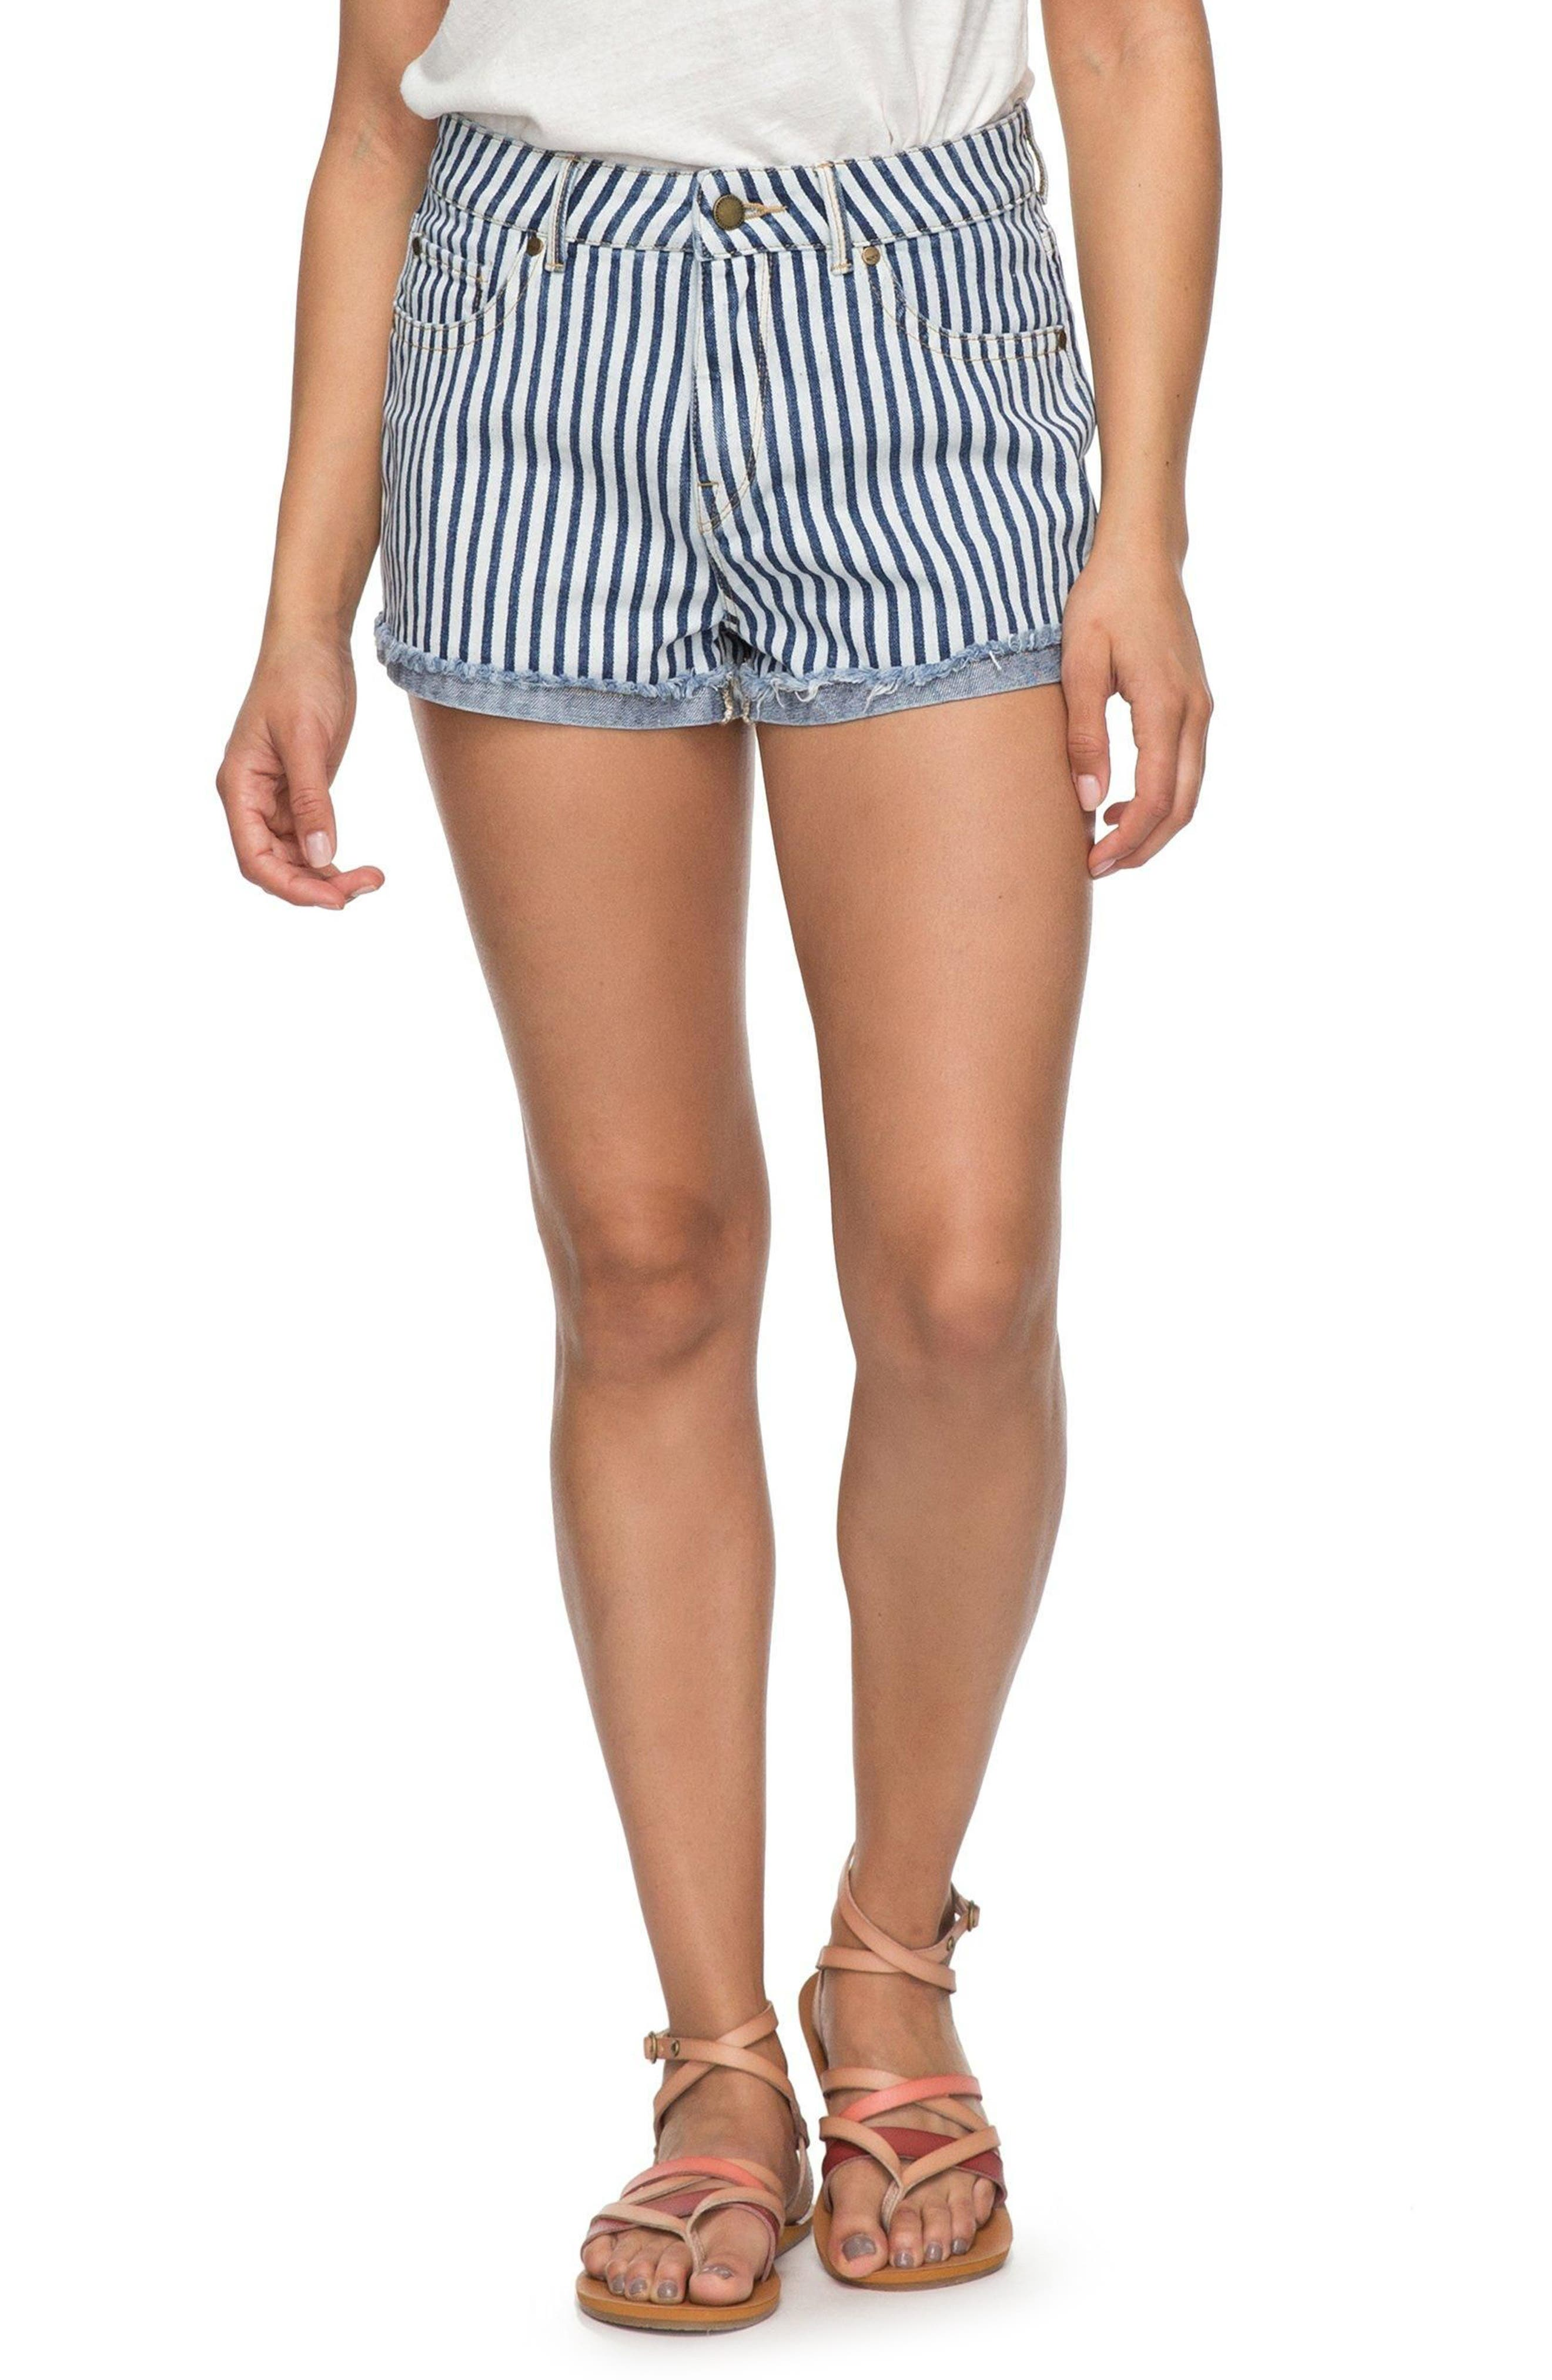 Holbrook Stripe Cotton Shorts,                             Main thumbnail 1, color,                             Medium Blue La Vague Stripe